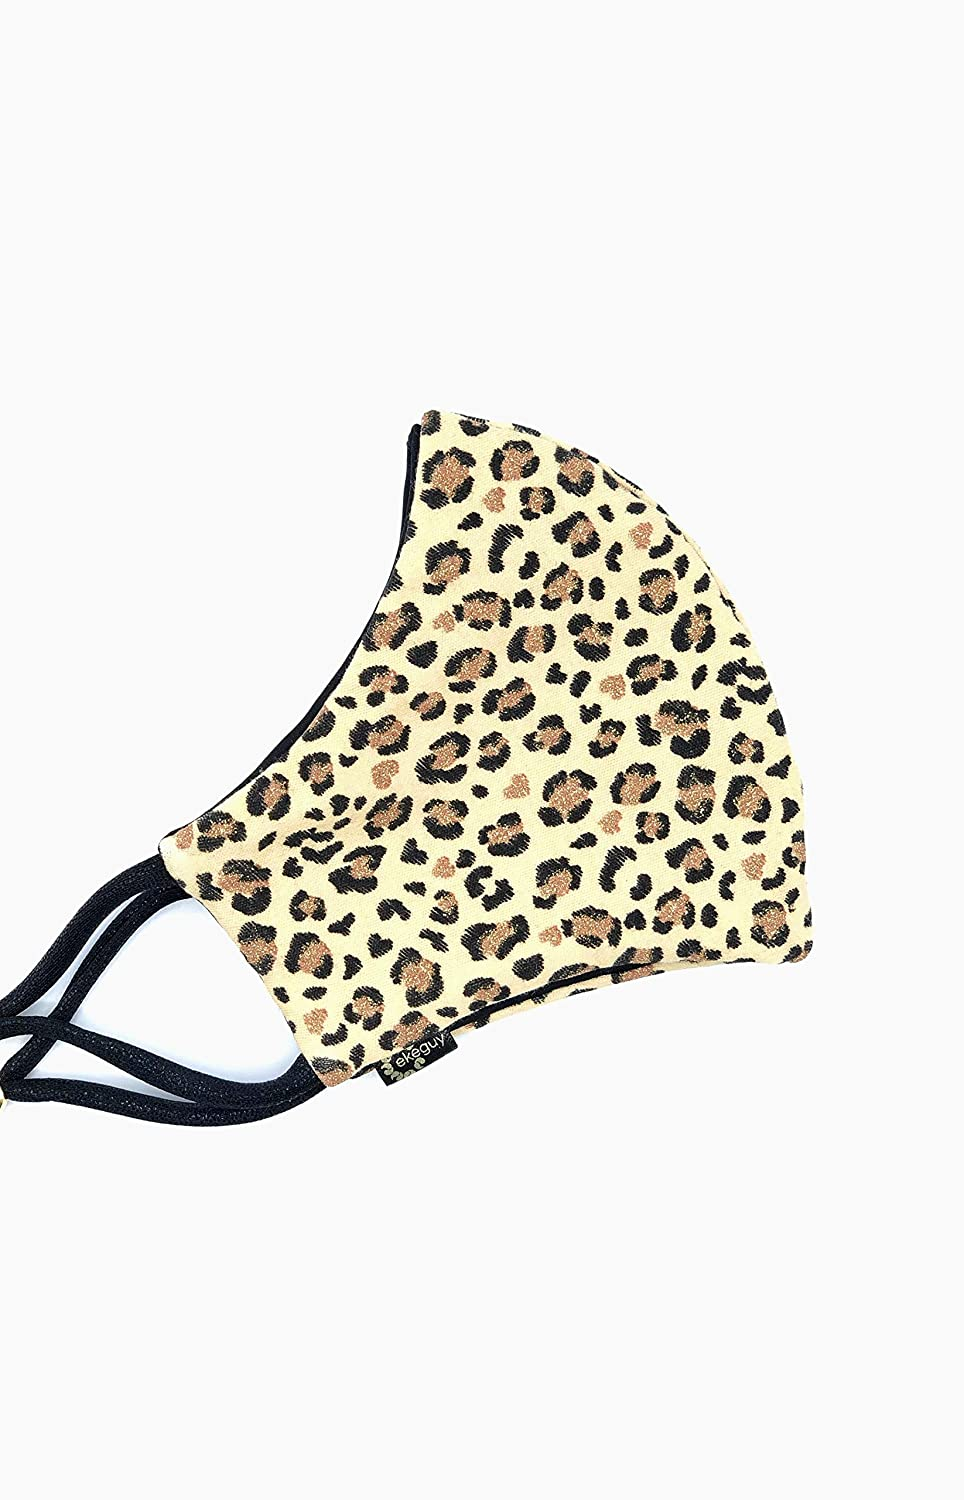 Leopard Print Raleigh Mall - New popularity Face Mask Soft Seamles Animal Facemask